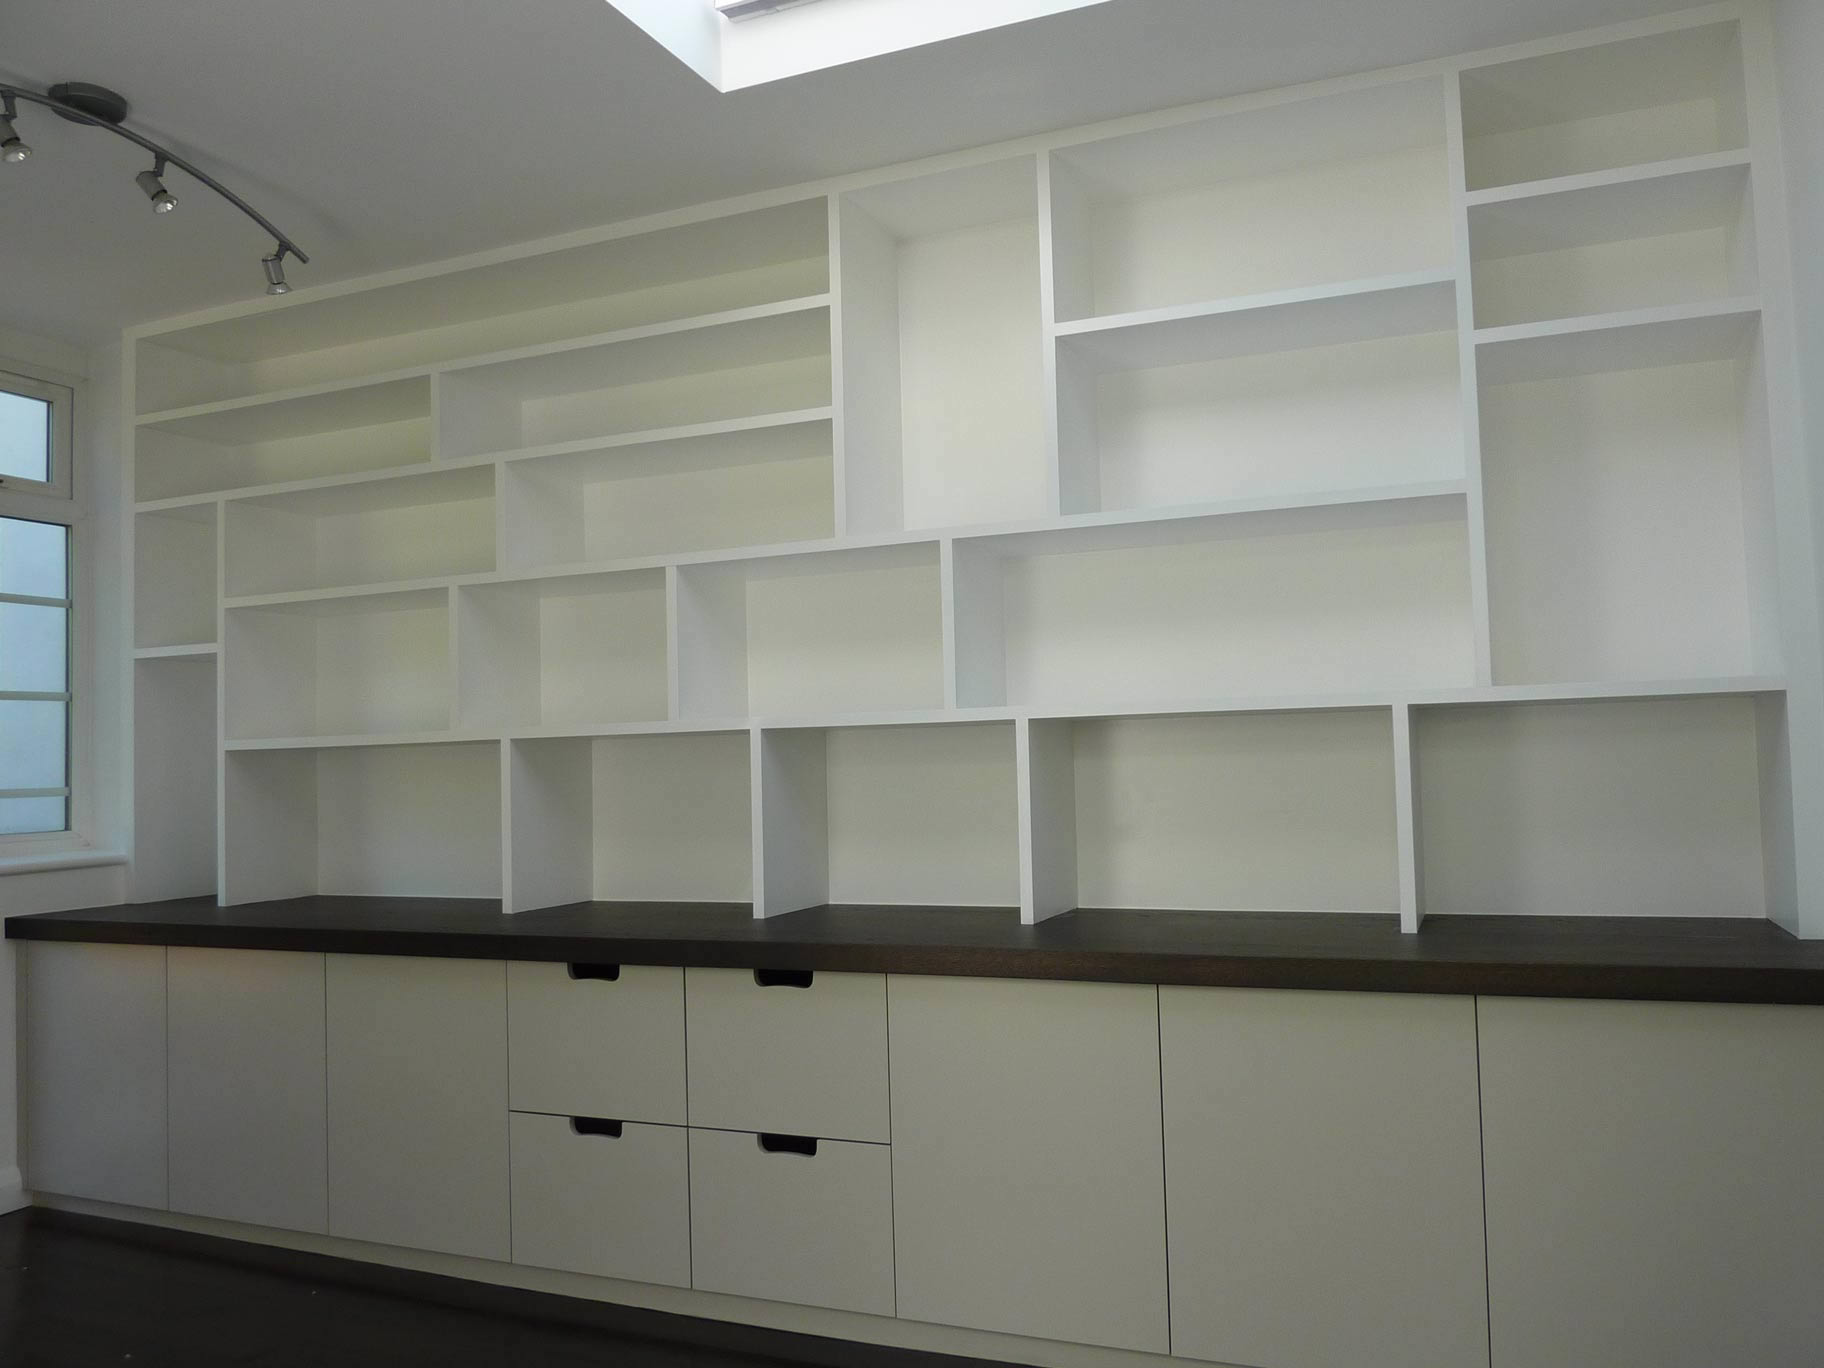 fitted study cabinetry handmade by Peter Henderson